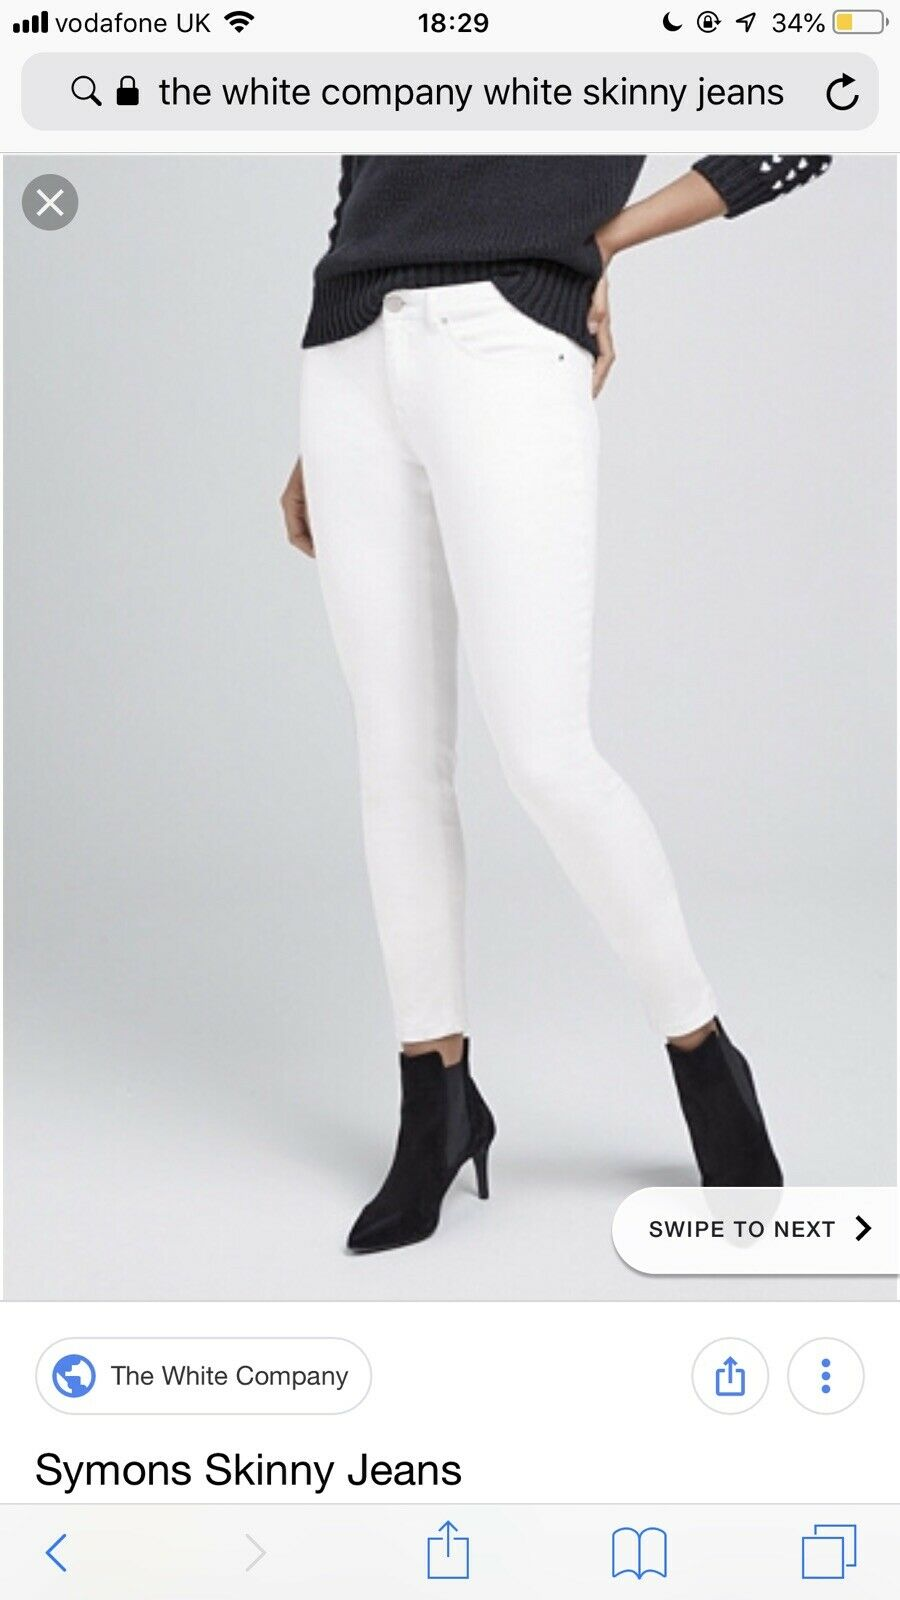 The White Company Skinny Jeans - White - Size 12 - Stretchy Trousers Pants